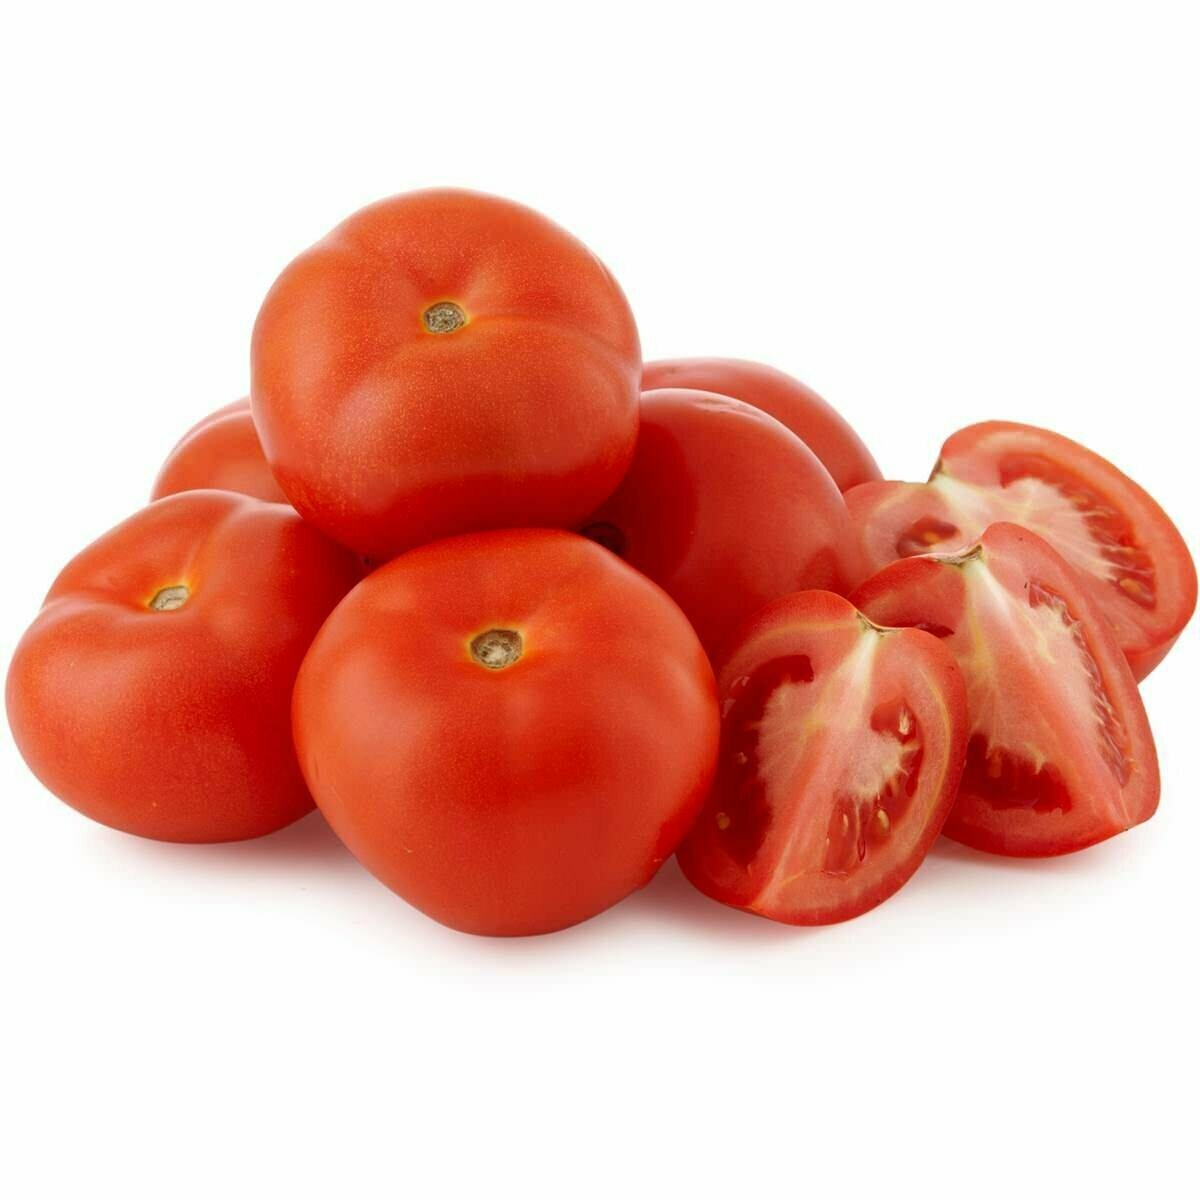 Tomatoes 5x6 large